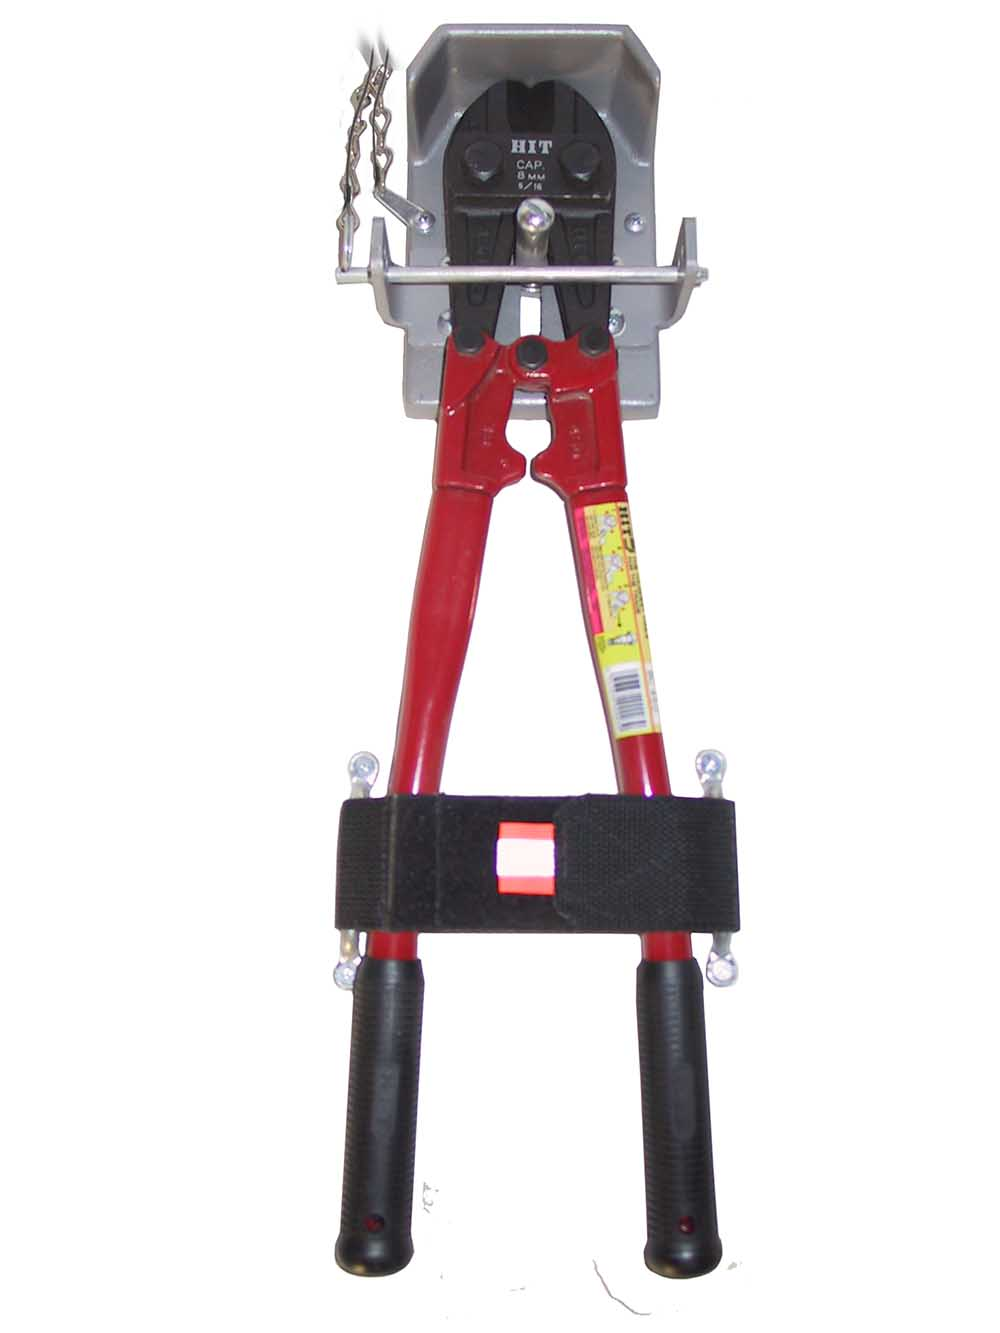 Bolt Cutter Bracket